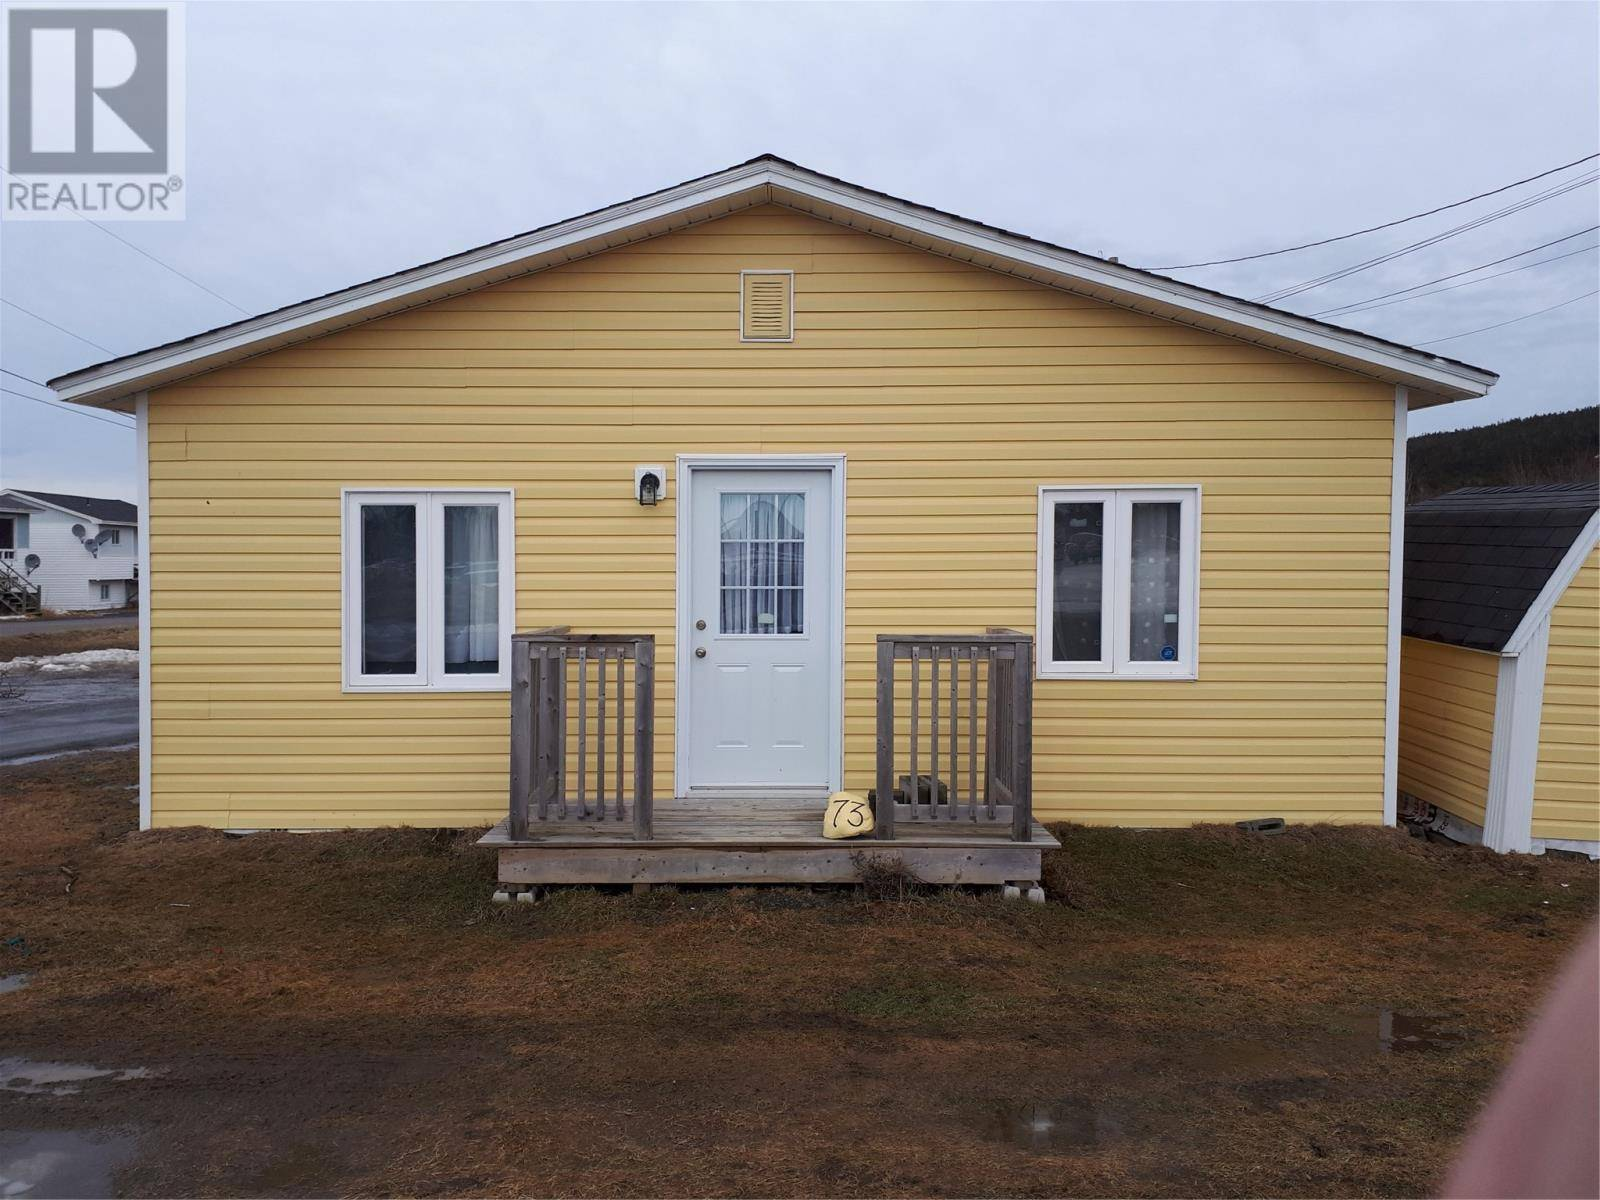 House for sale at 73 High Rd South Carbonear Newfoundland - MLS: 1200635